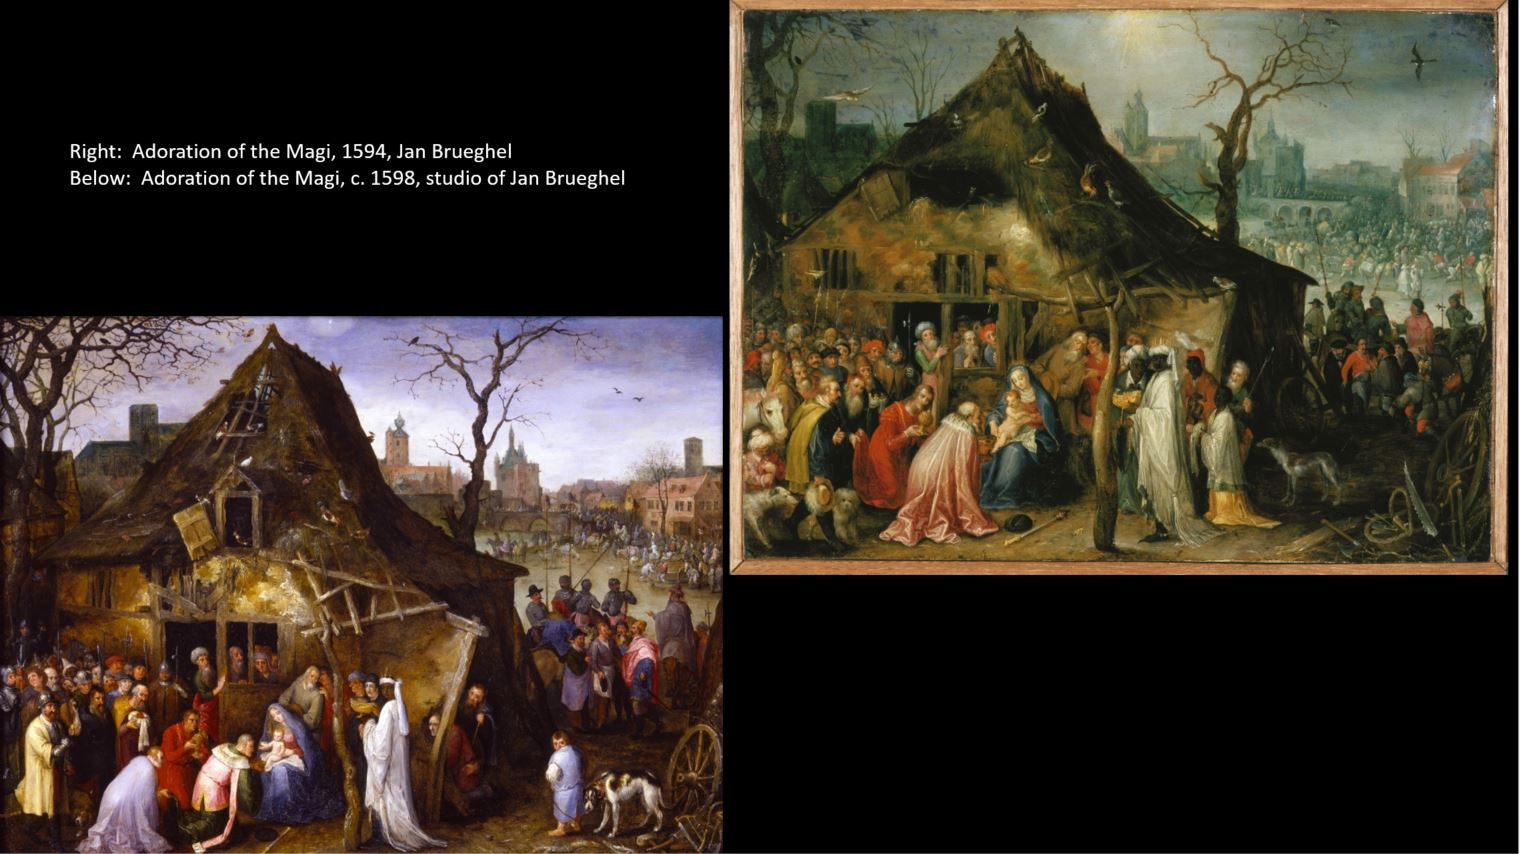 Two very similar paintings by Jan Brueghel or his studio, showing the Adoration of the Magi.